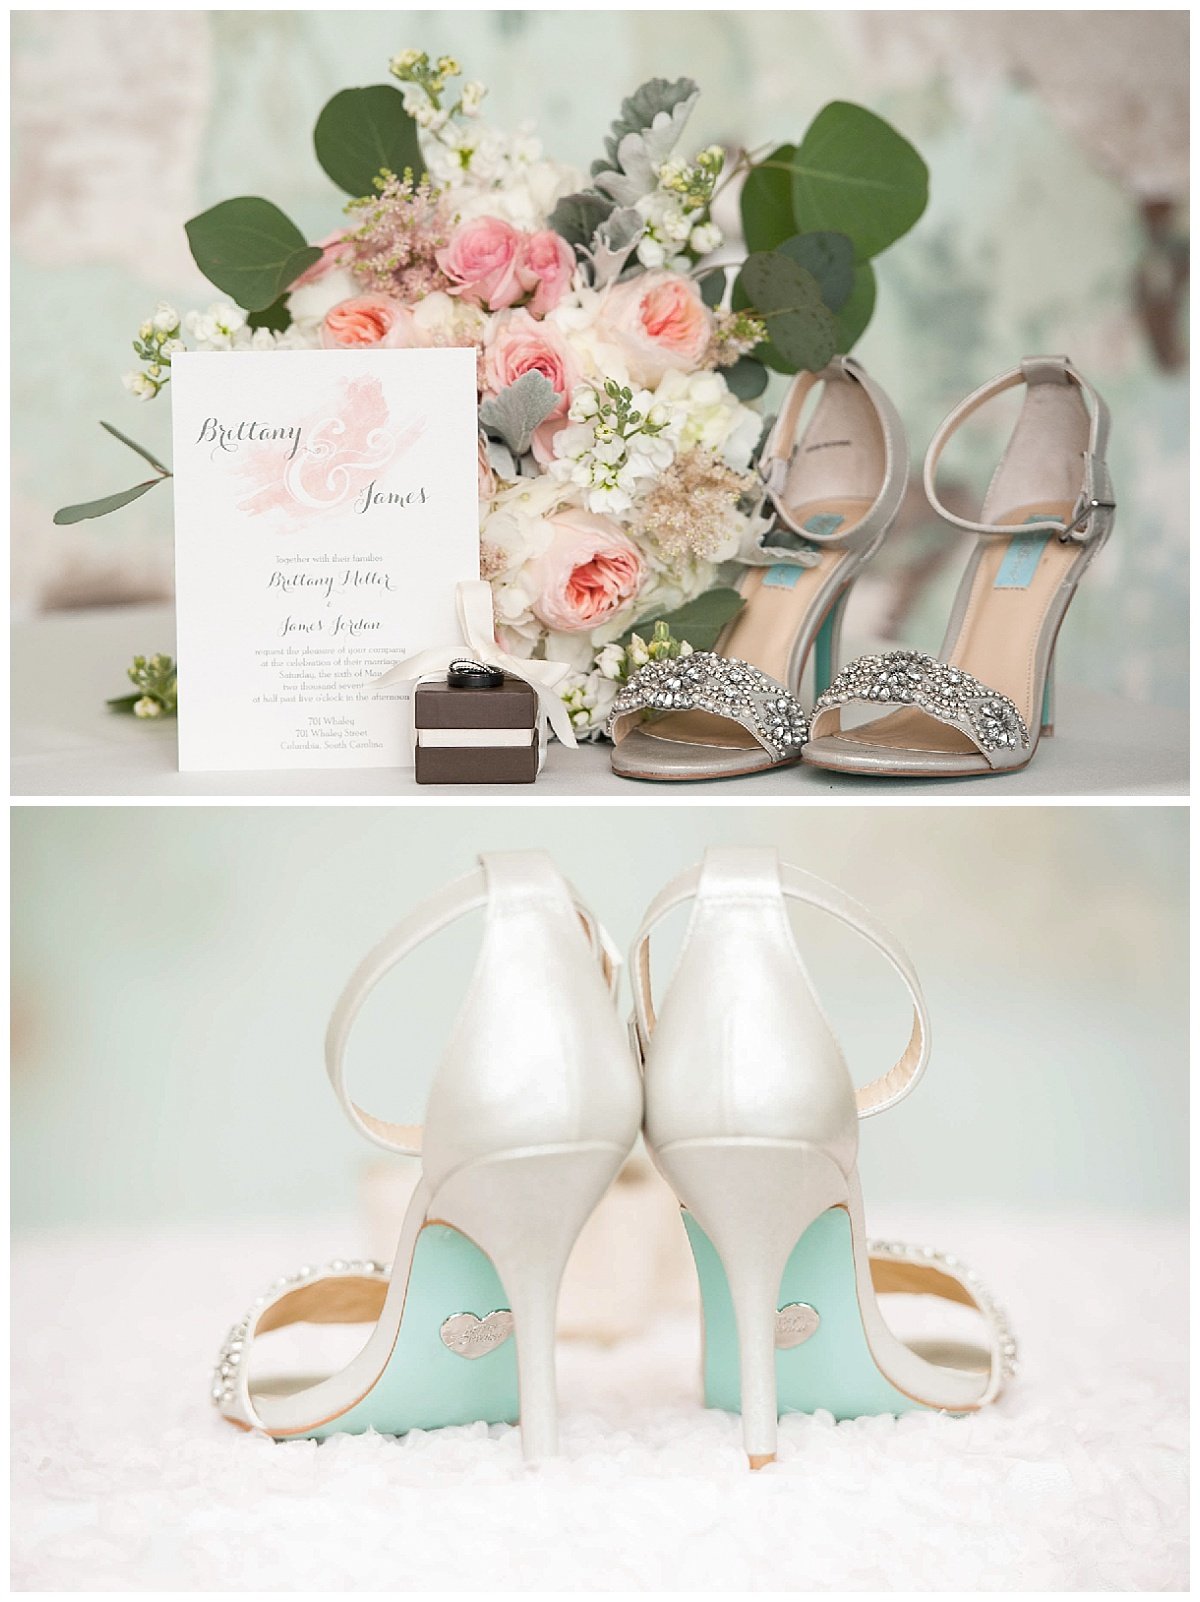 Pink and green color scheme and wedding shoes